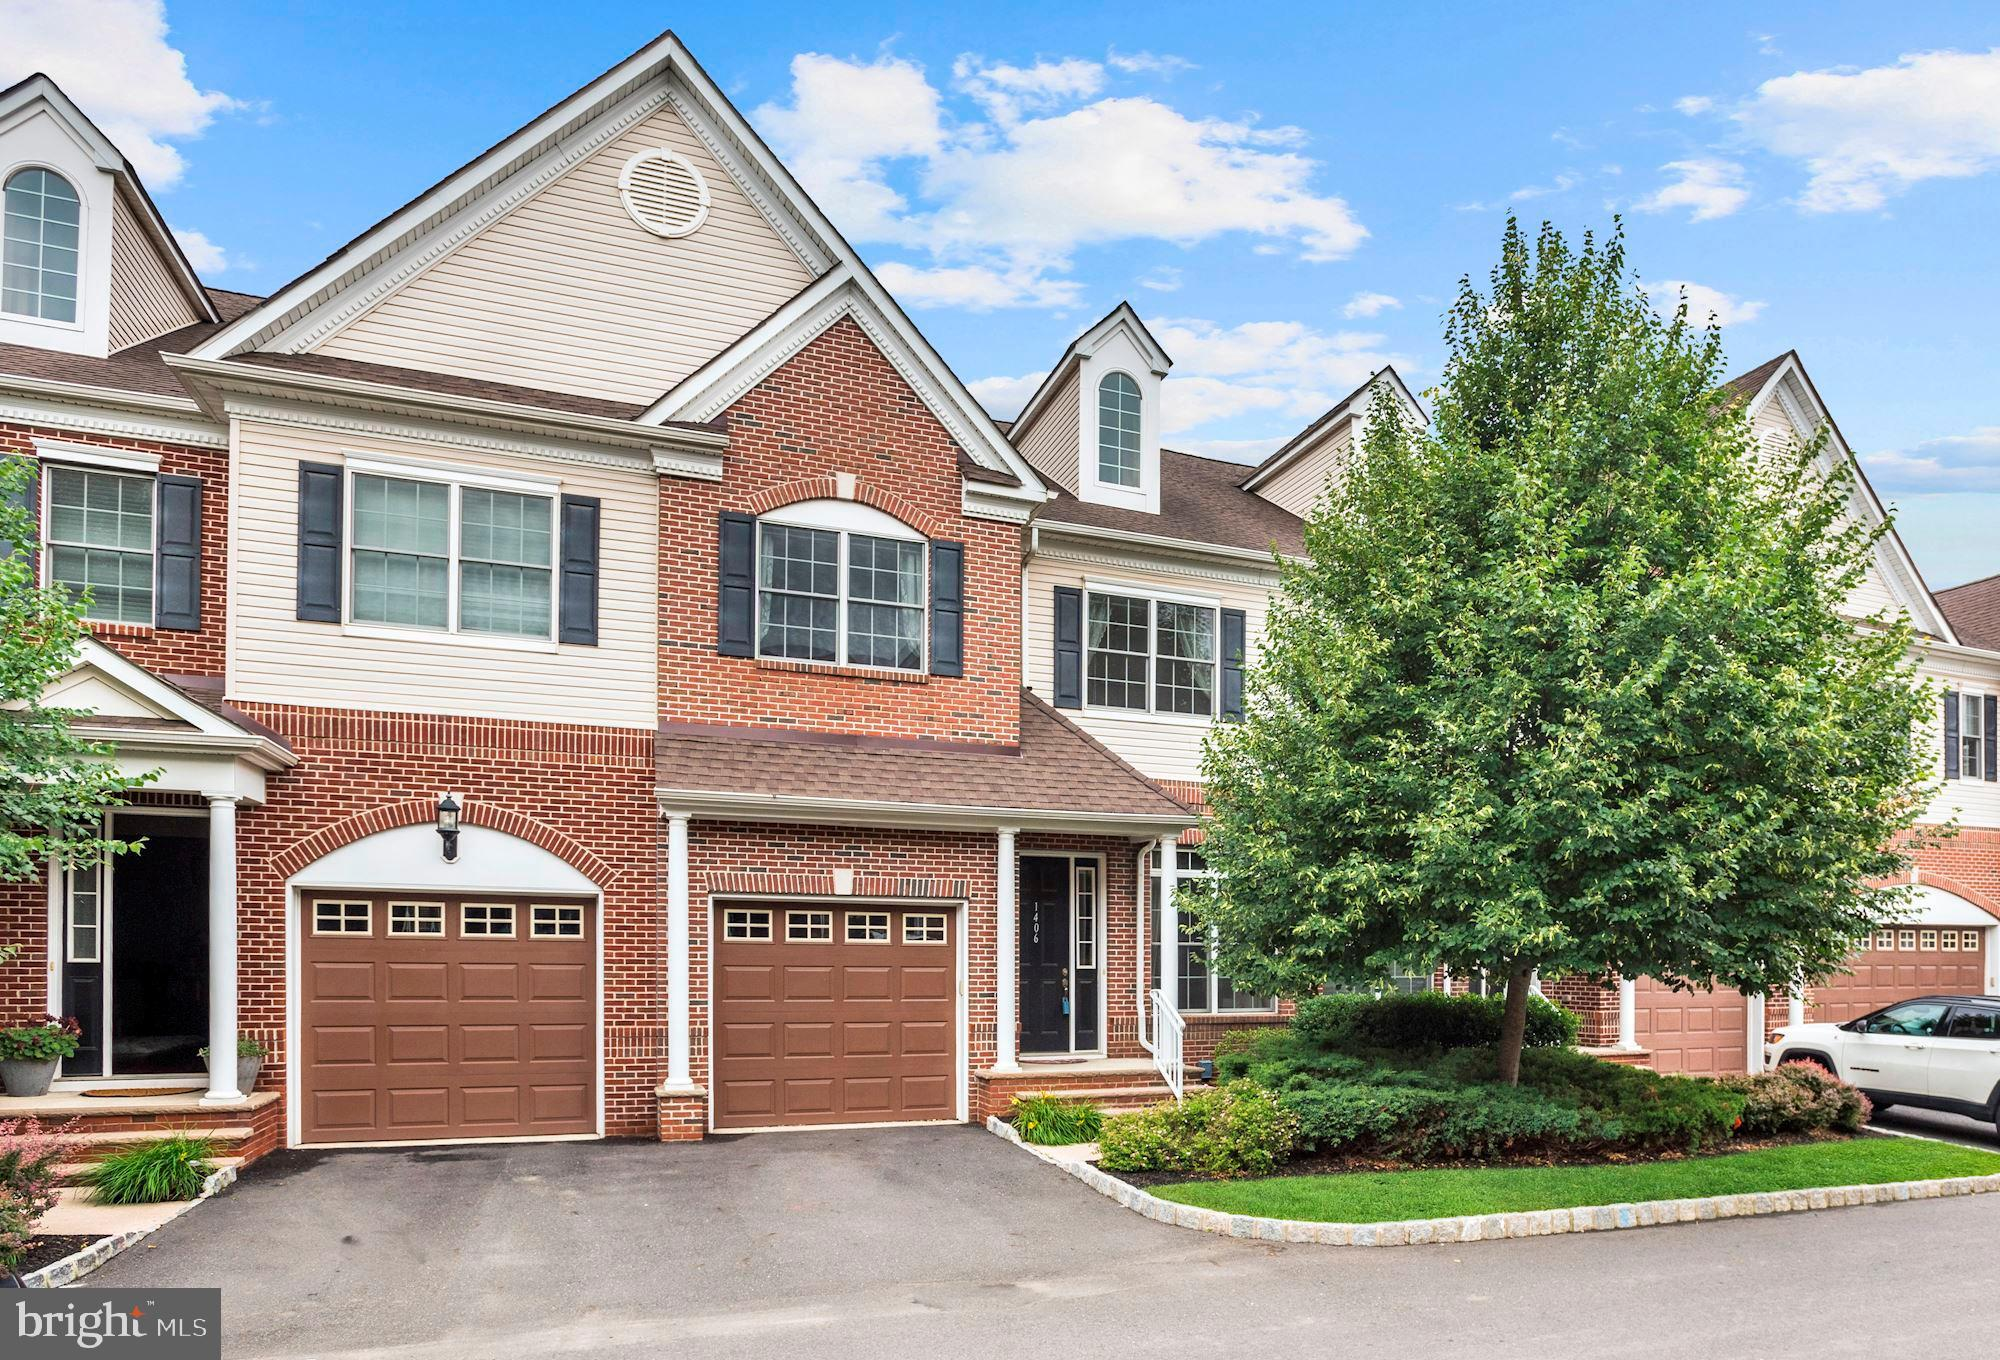 1406 PREAKNESS COURT, CHERRY HILL, NJ 08002